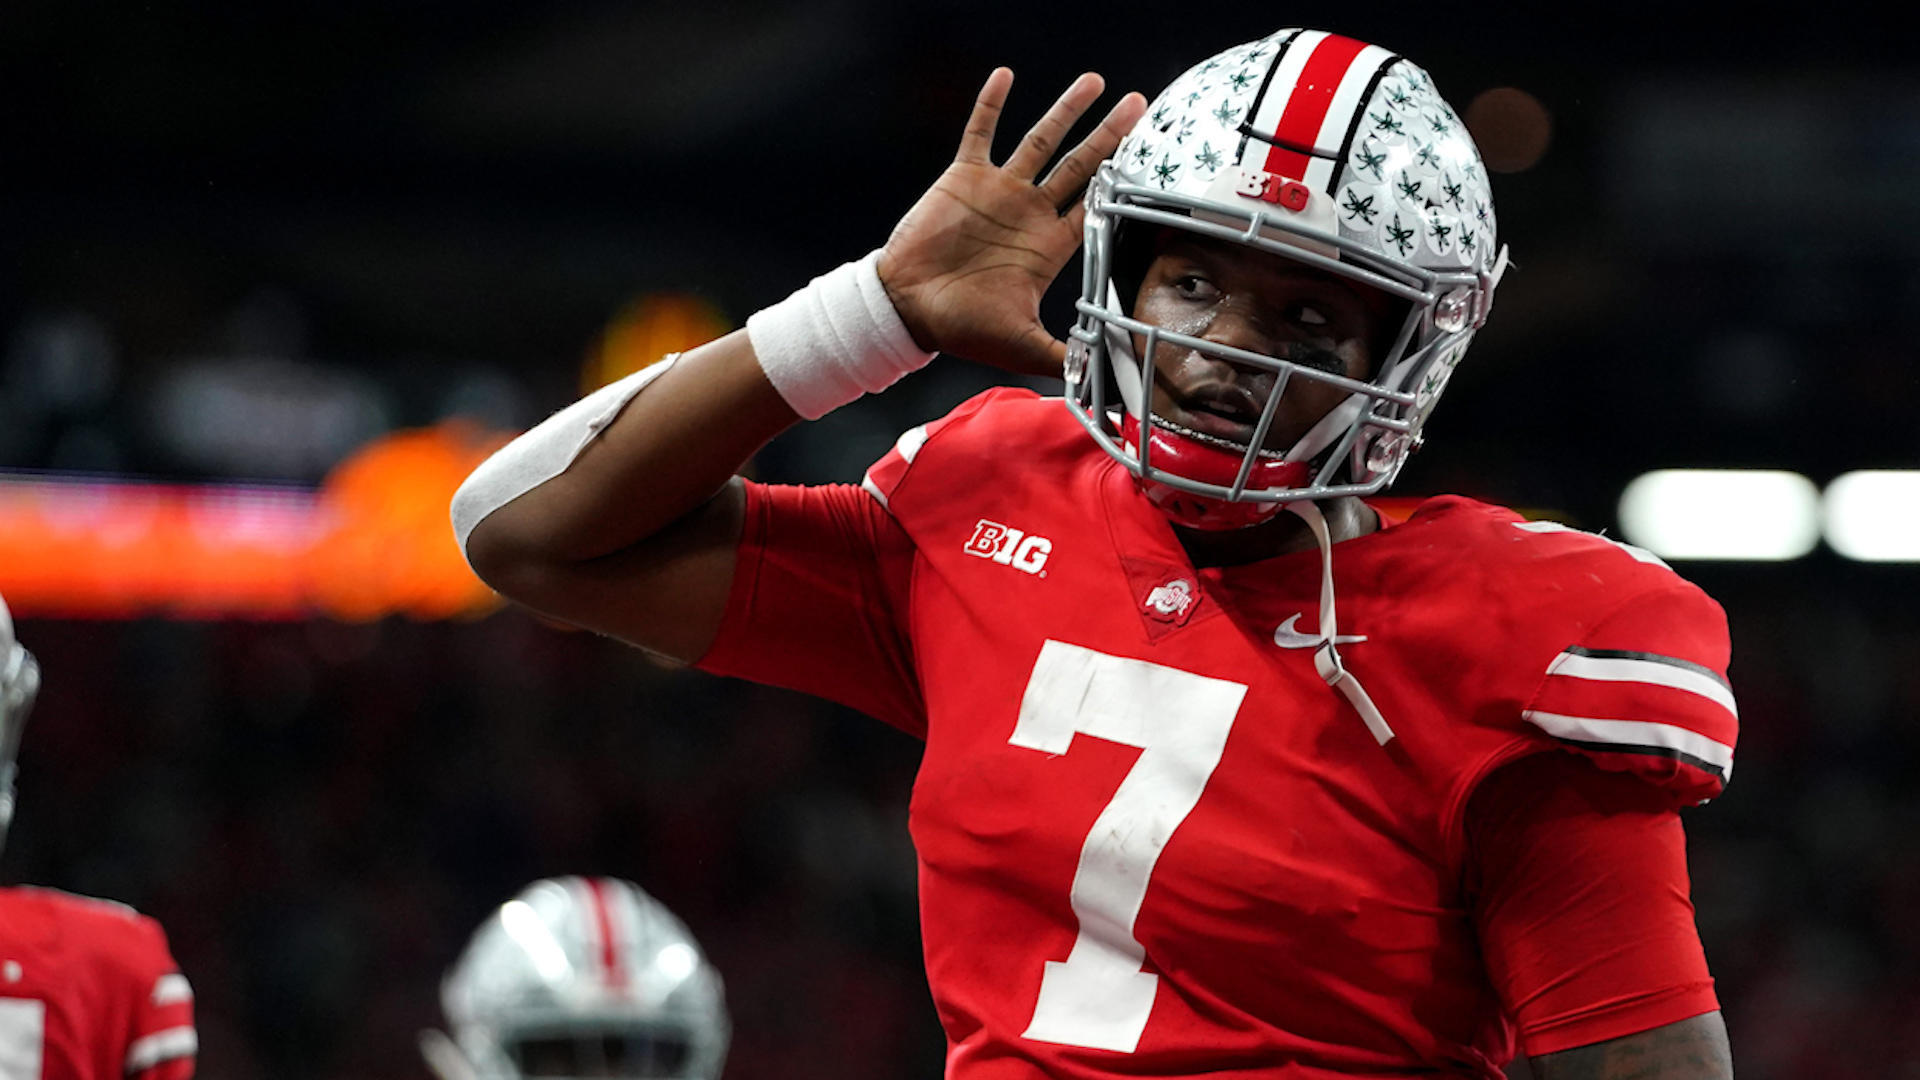 2019 NFL Draft: The most underrated player at each position that your team could snag